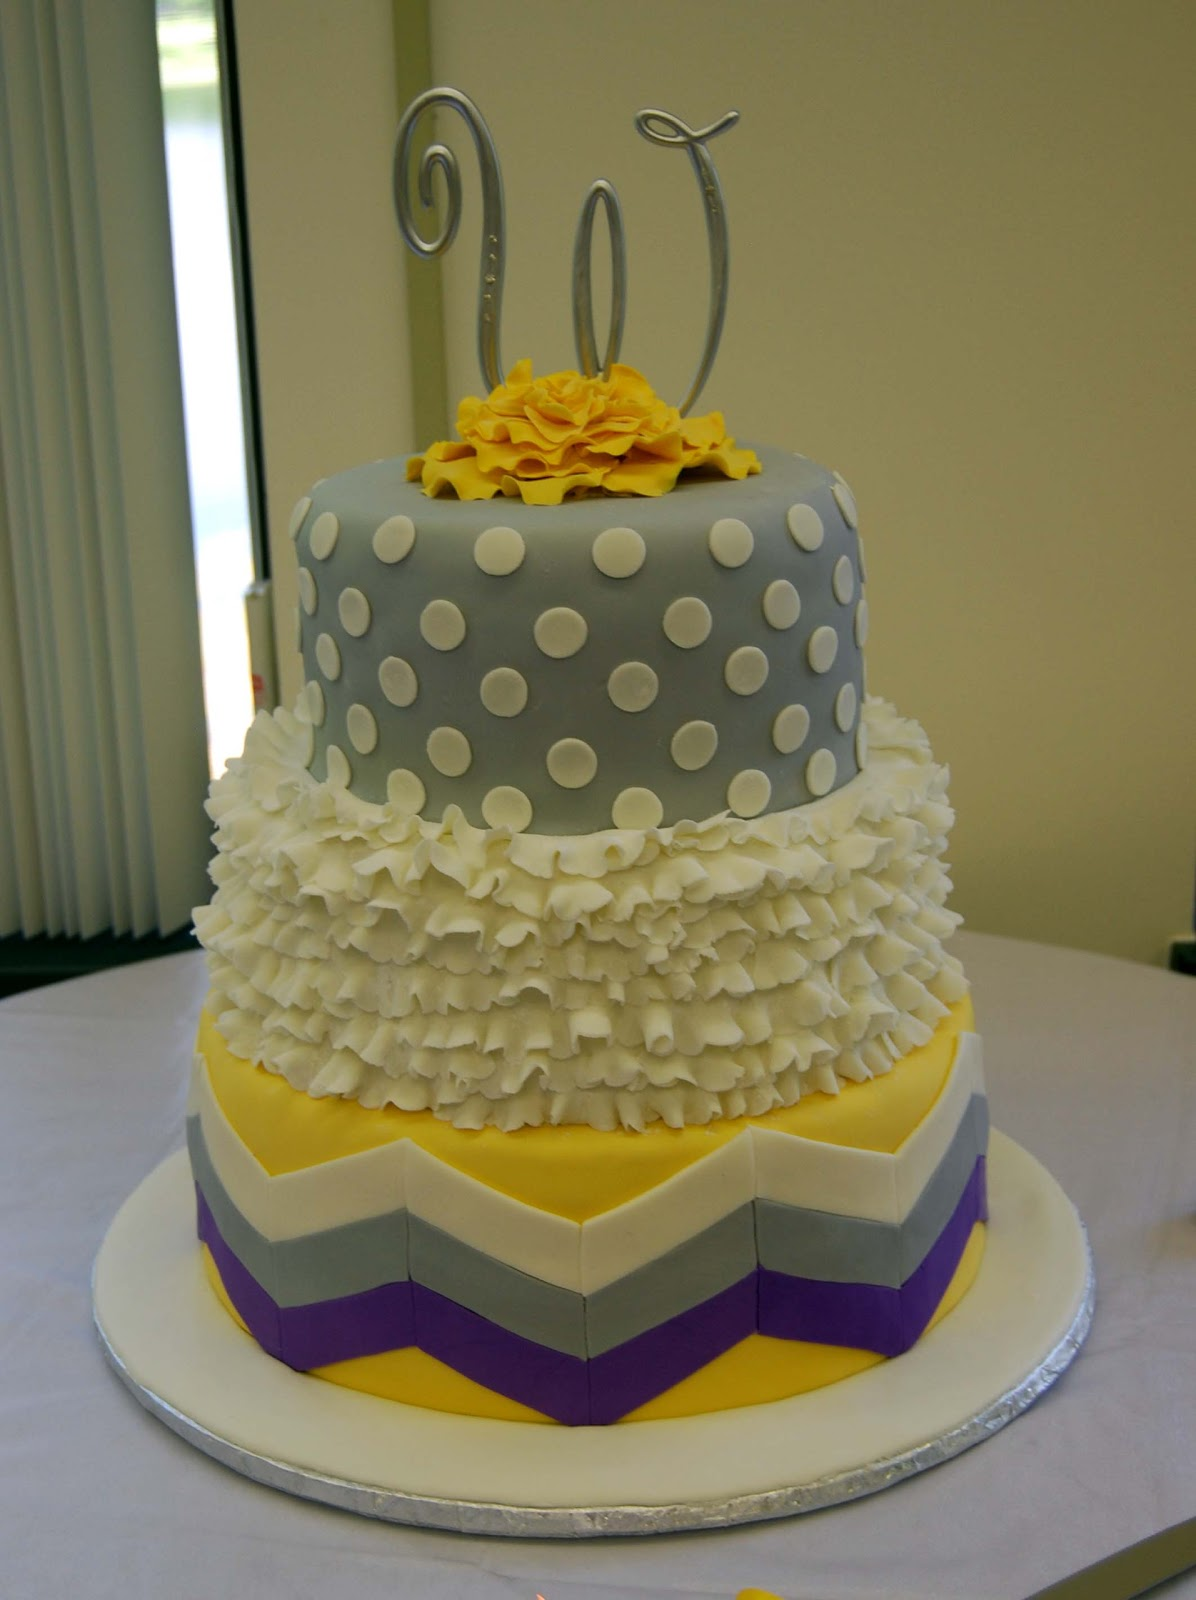 leelees cake abilities grey and yellow wedding cake